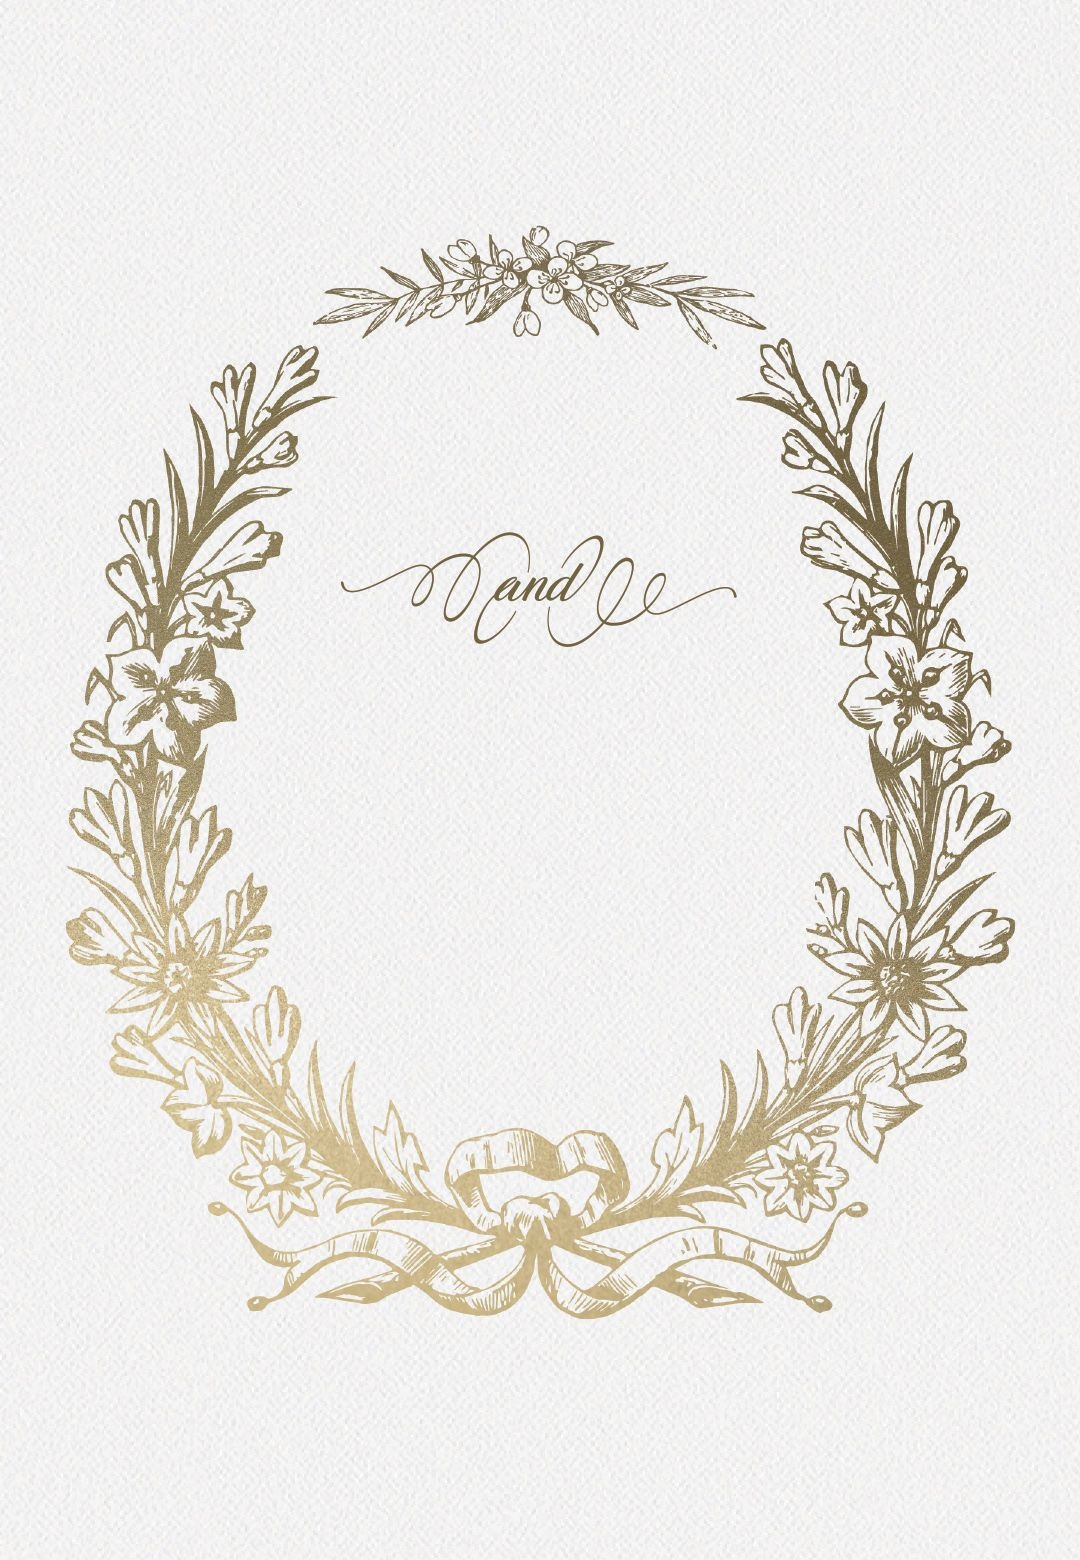 Golden Wreath - Wedding Invitation Template (Free) | Greetings - Free Printable Engagement Invitations